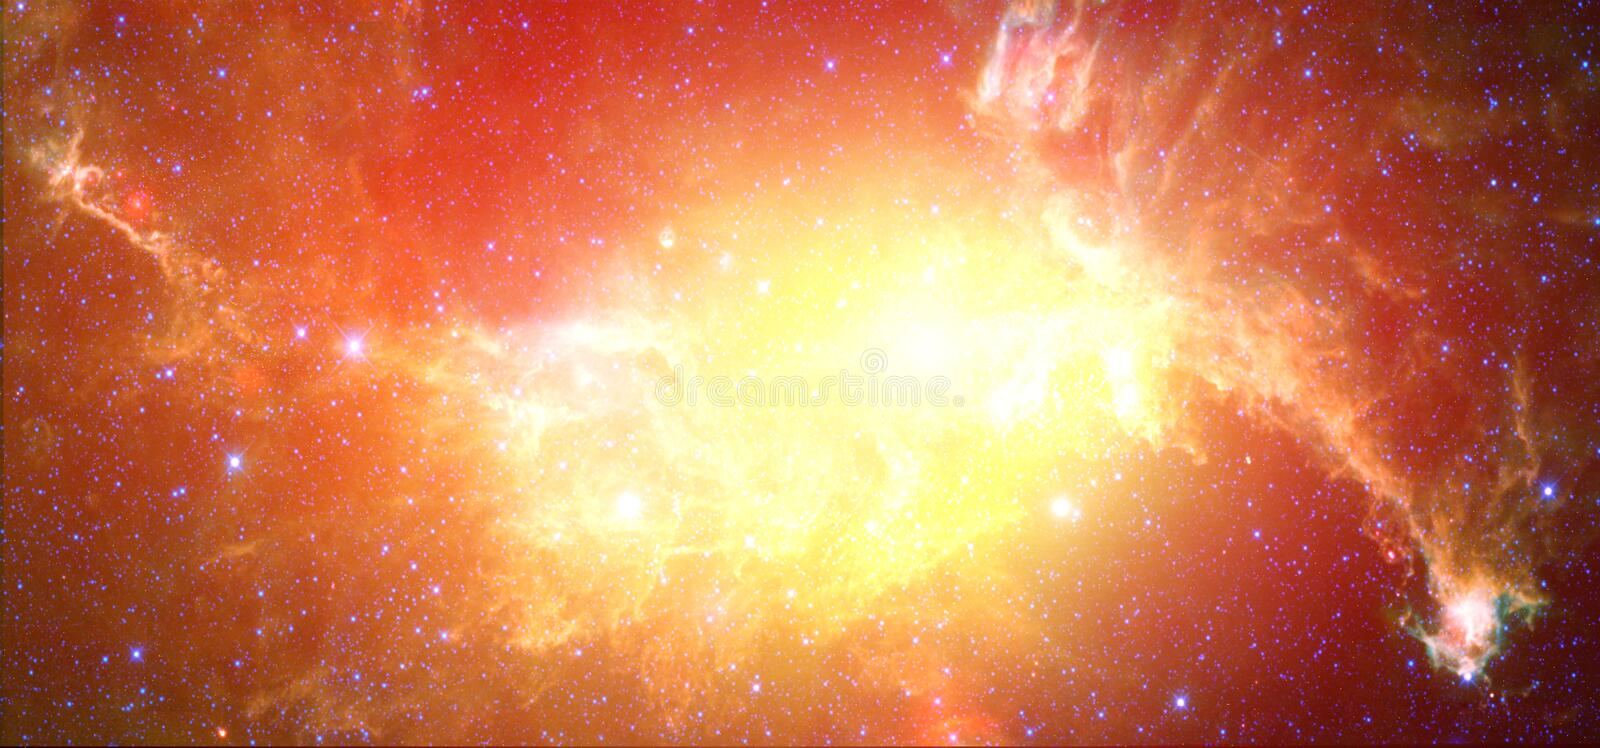 Nebulosa illustrazione di stock